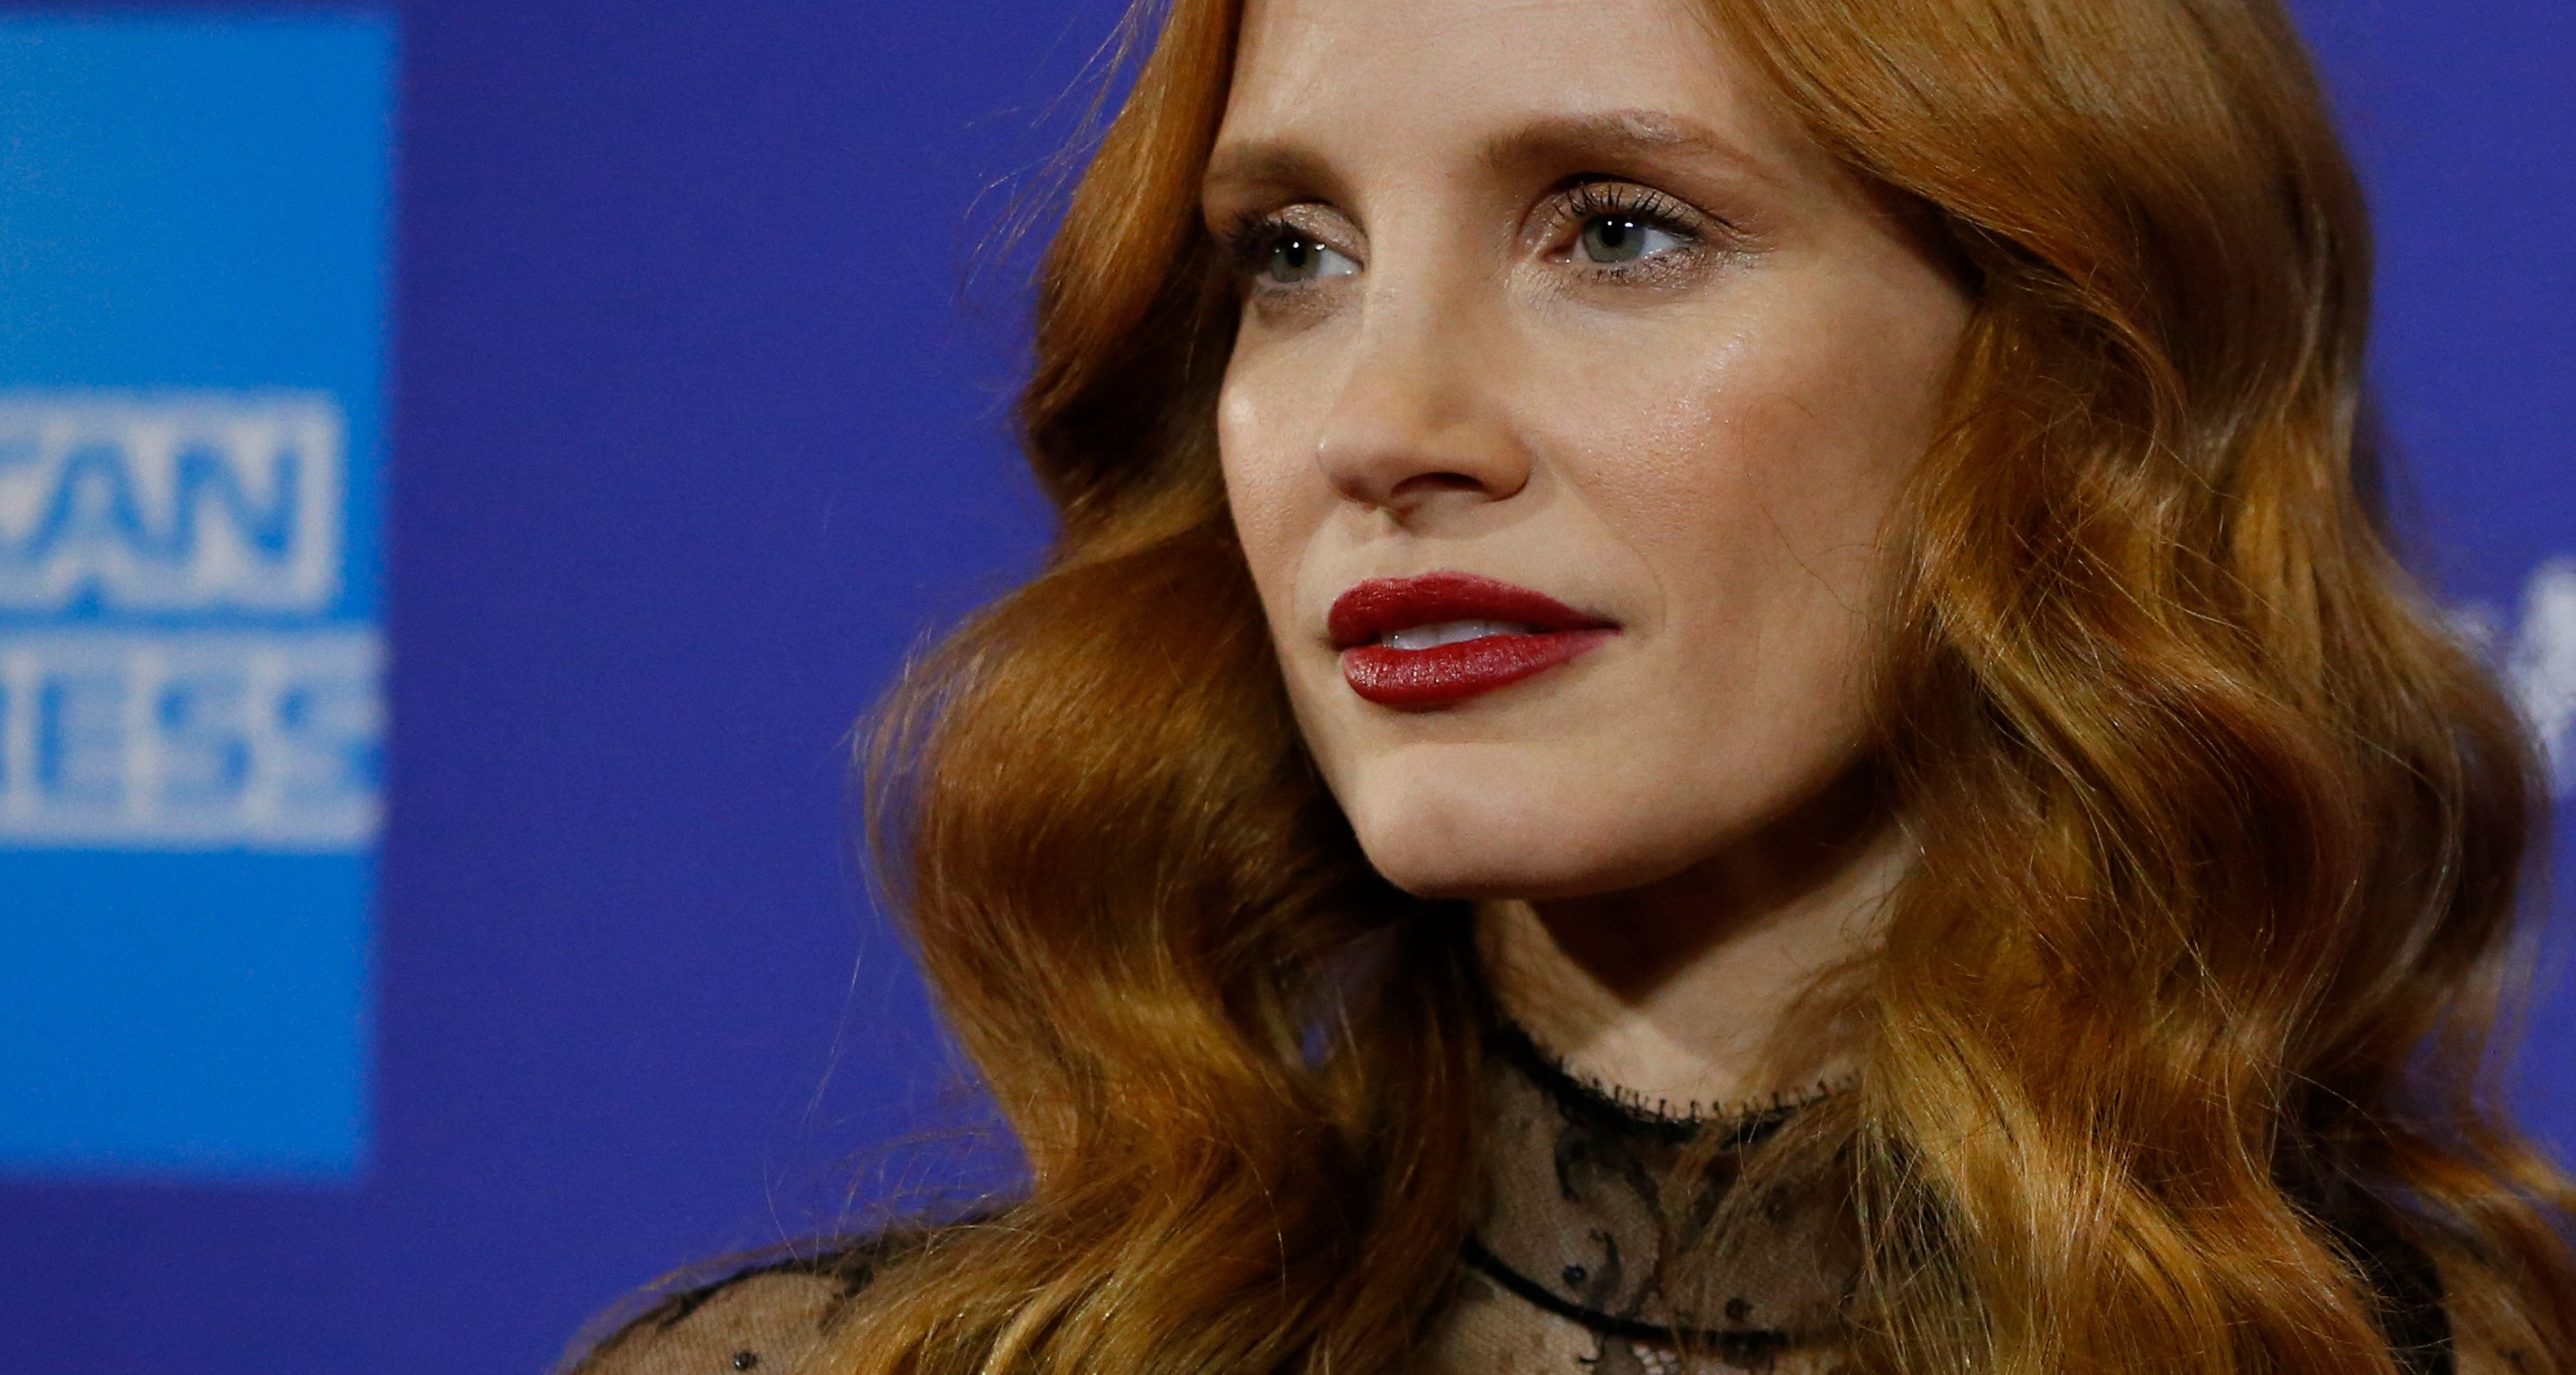 Actor Jessica Chastain poses at the 29th Annual Palm Springs International Film Festival Awards Gala in Palm Springs, California, U.S., January 2, 2018. REUTERS/Mario Anzuoni